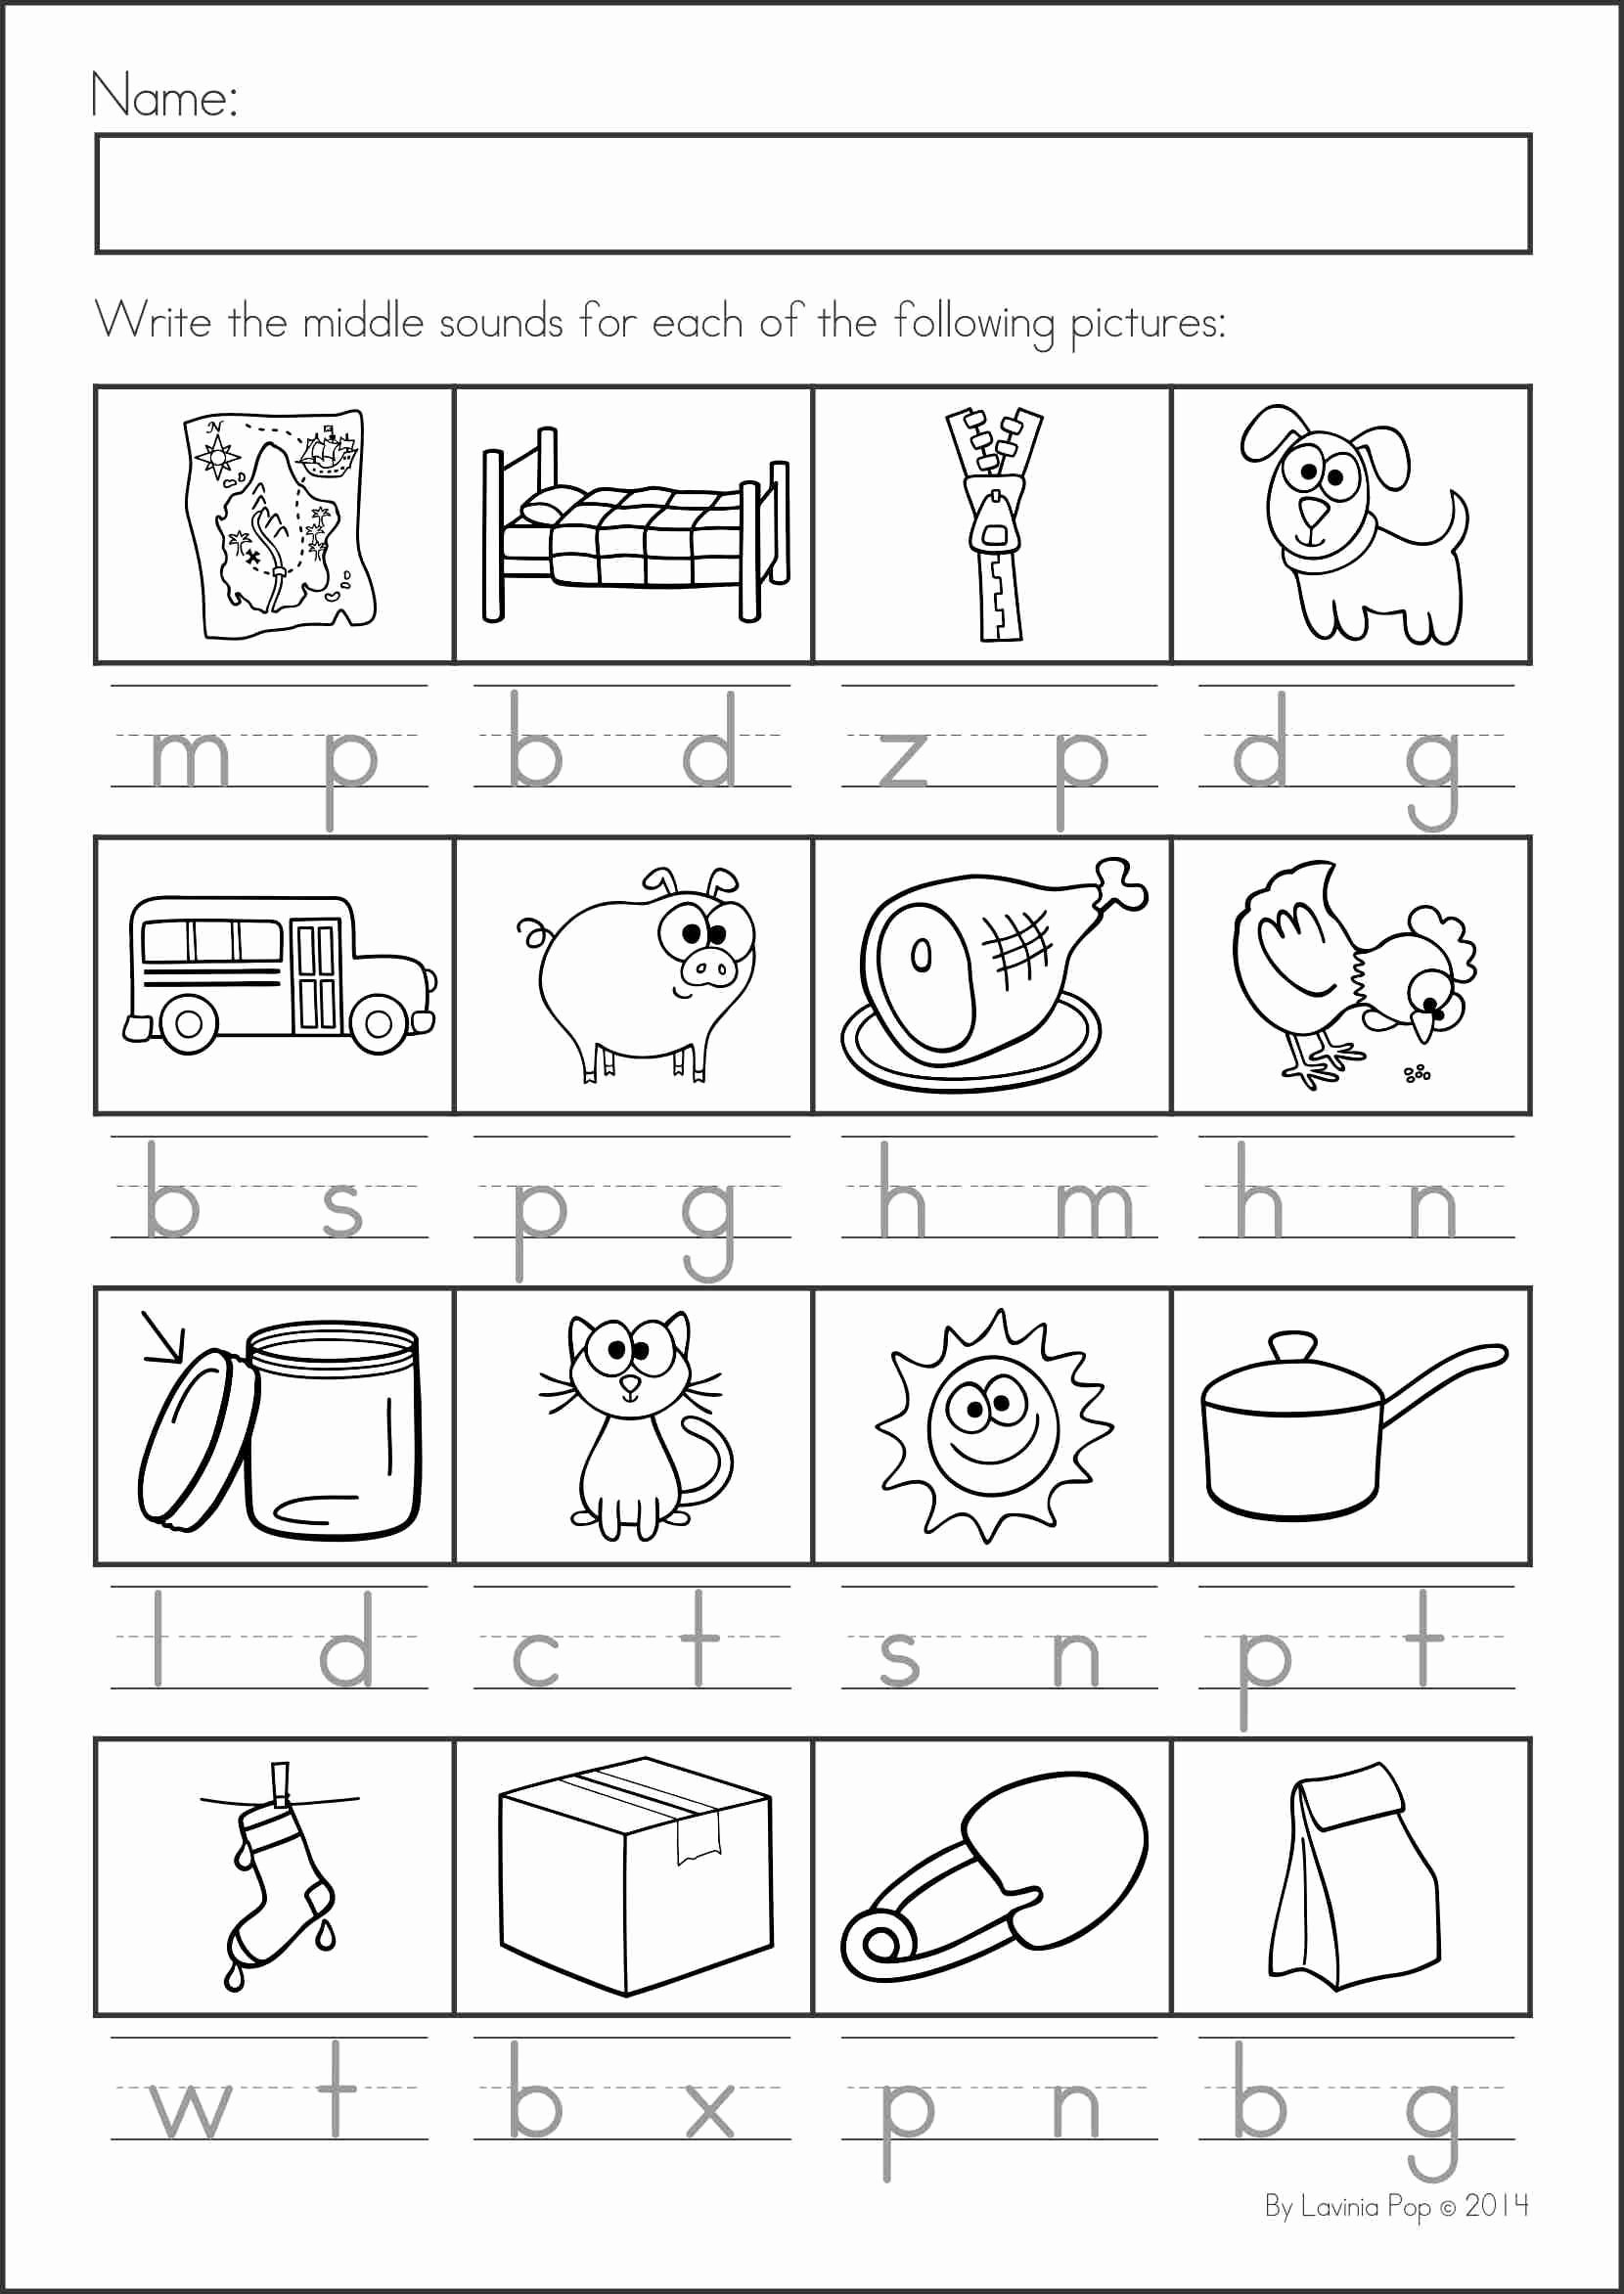 Language Worksheets for Preschoolers top Summer Review Kindergarten Math & Literacy Worksheets